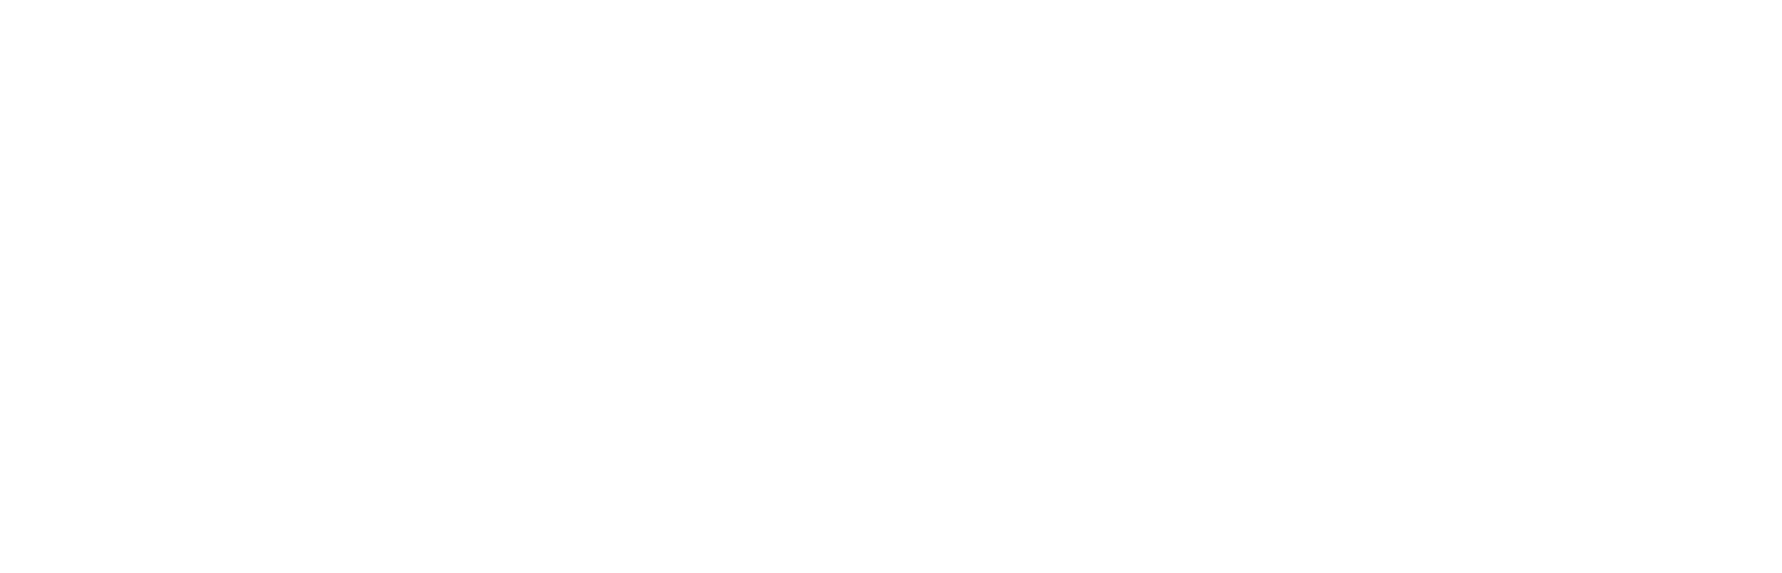 Mario Engbers Gastronomie & Service GmbH - Logo